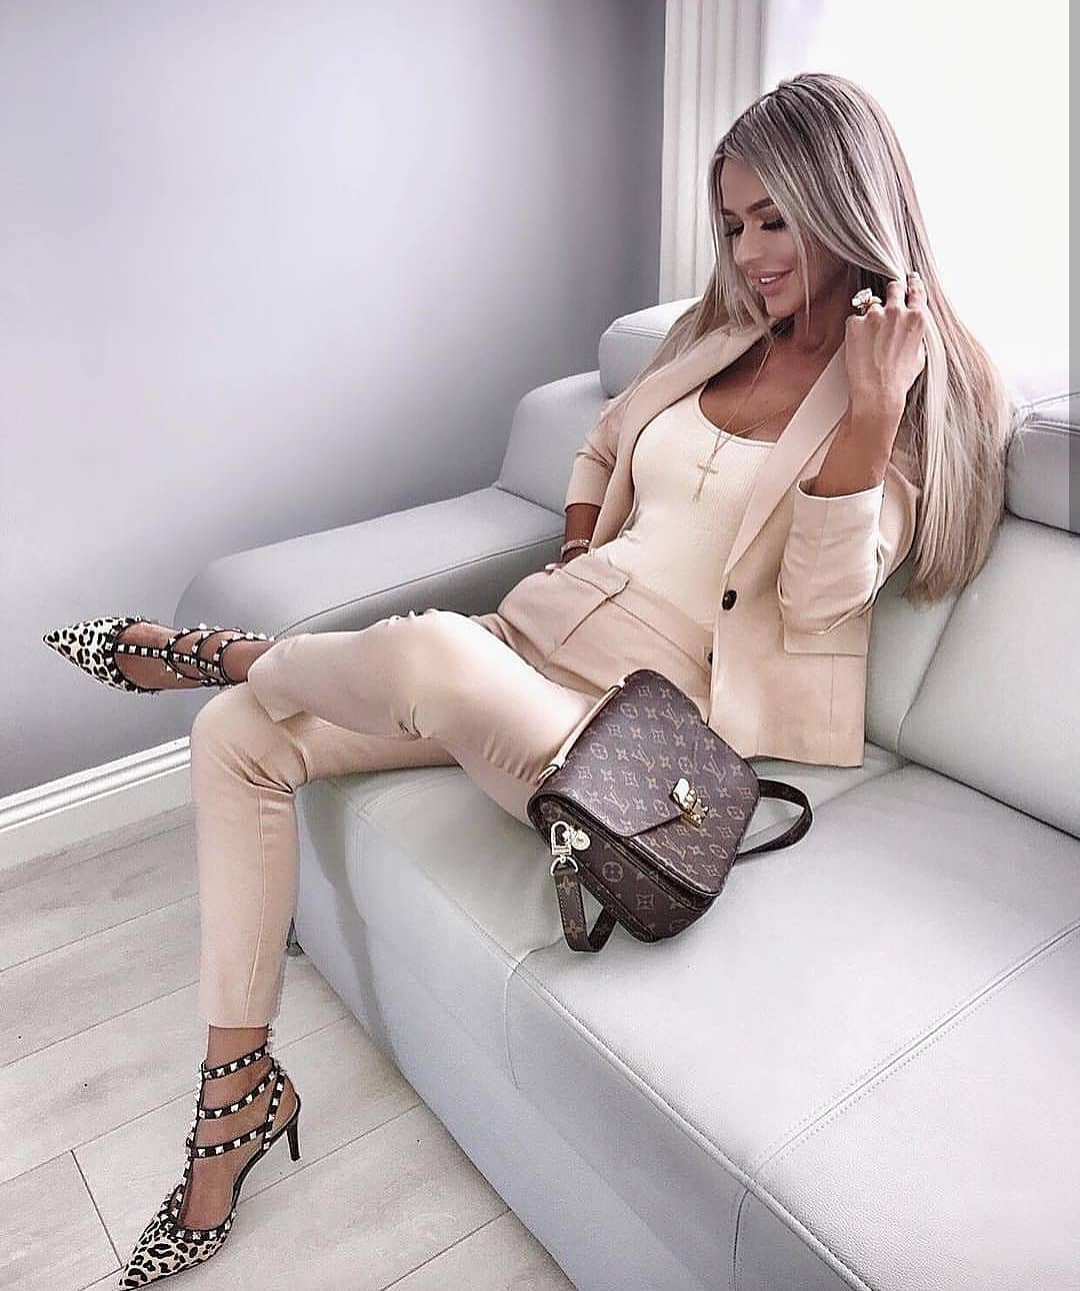 Pastel Pantsuit In Slim Fit For Young Women To Wear This Summer 2021